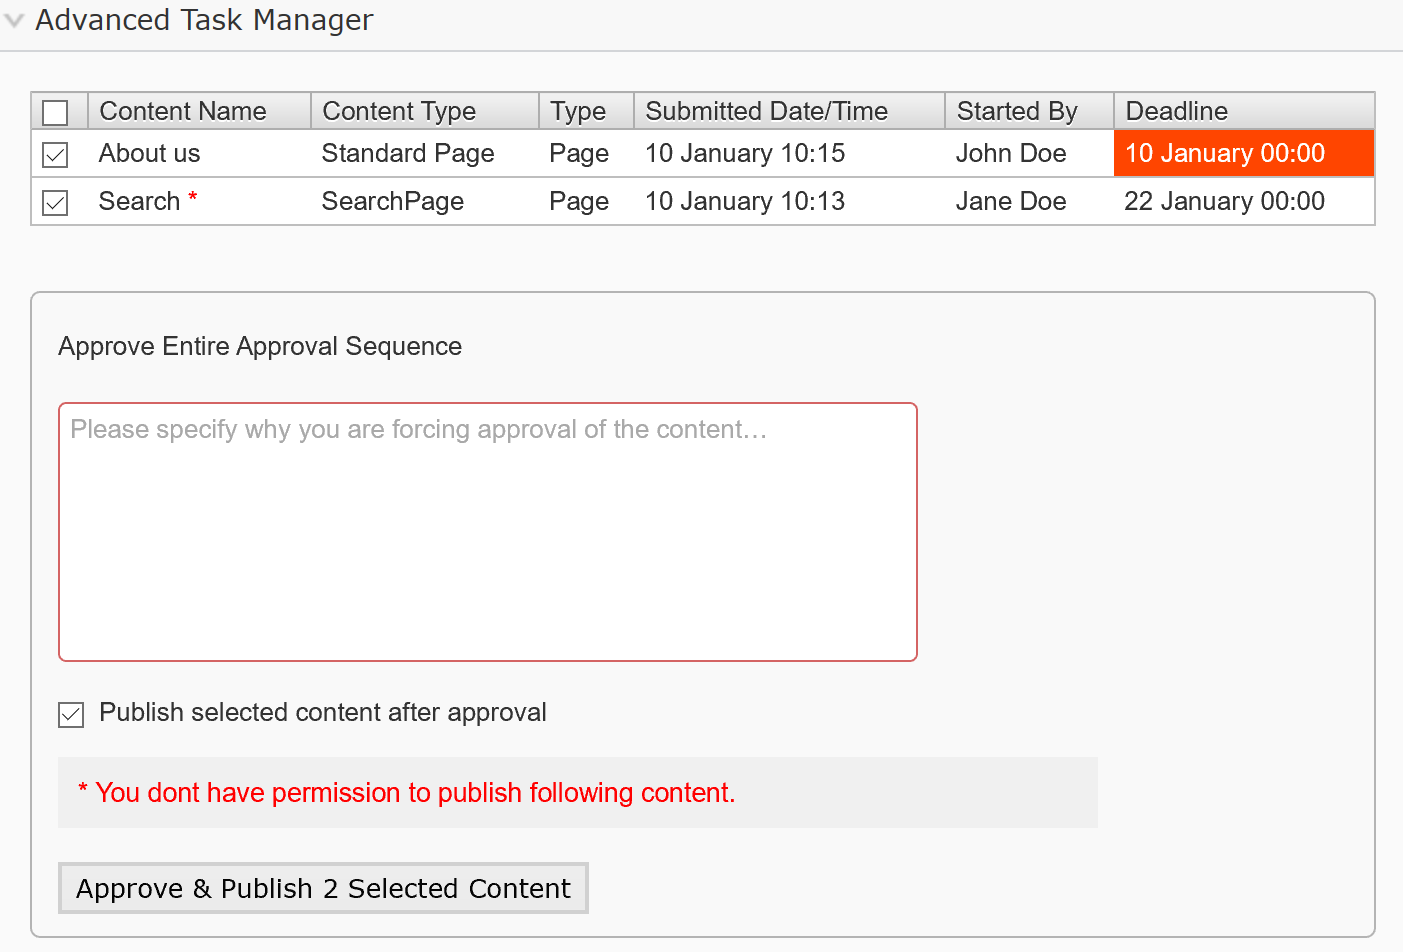 Publish content after approval